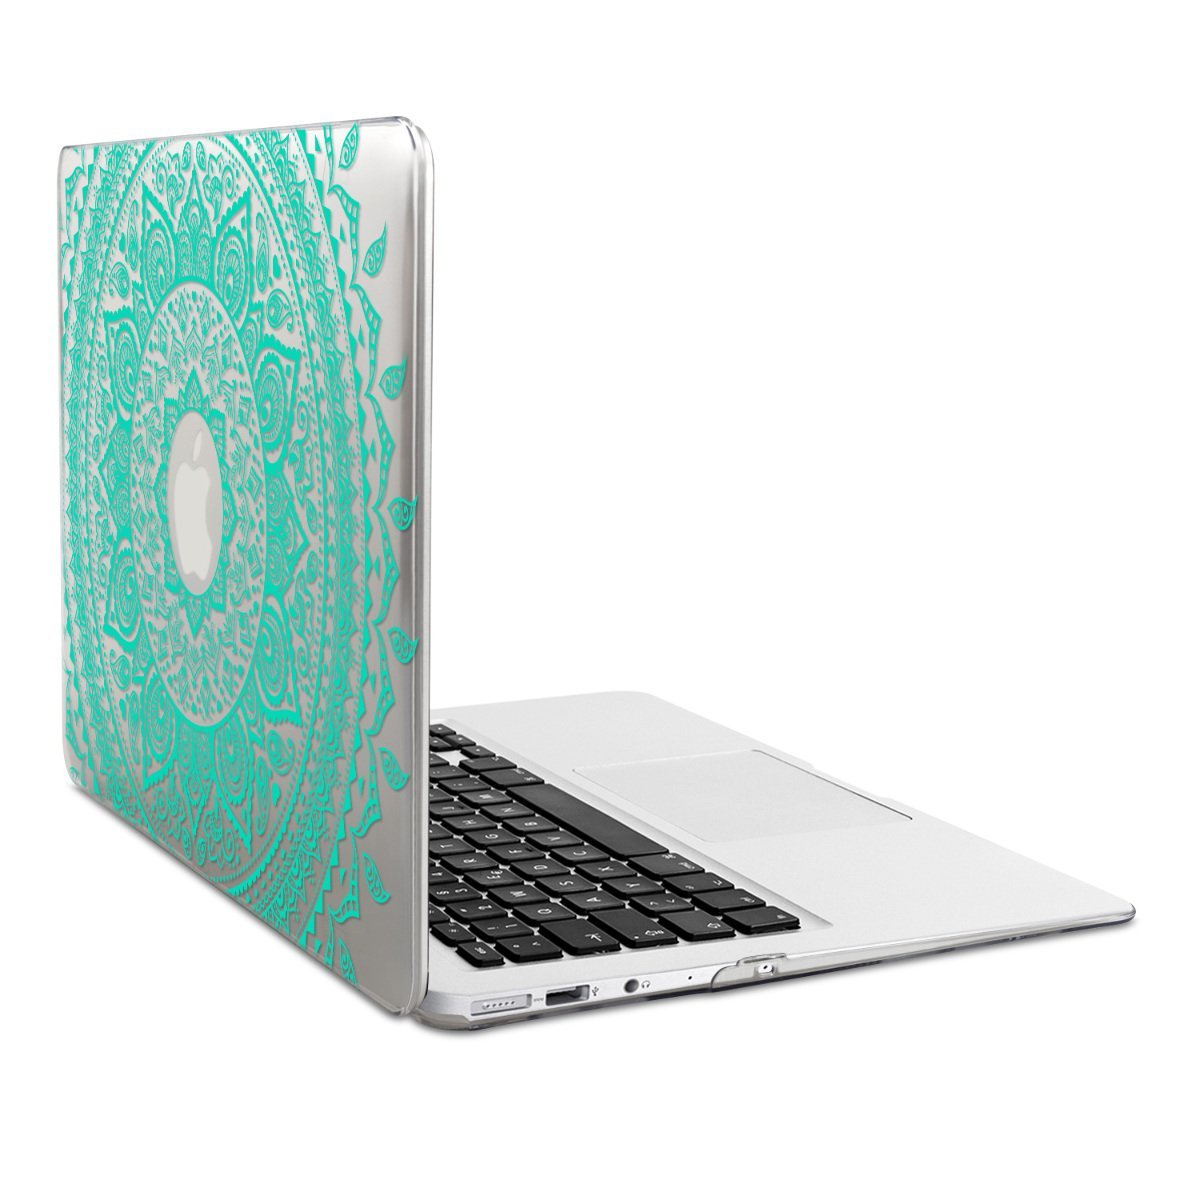 Kwmobile Crystal Case Buy Kwmobile Crystal Case Cover For Apple Macbook Air 13